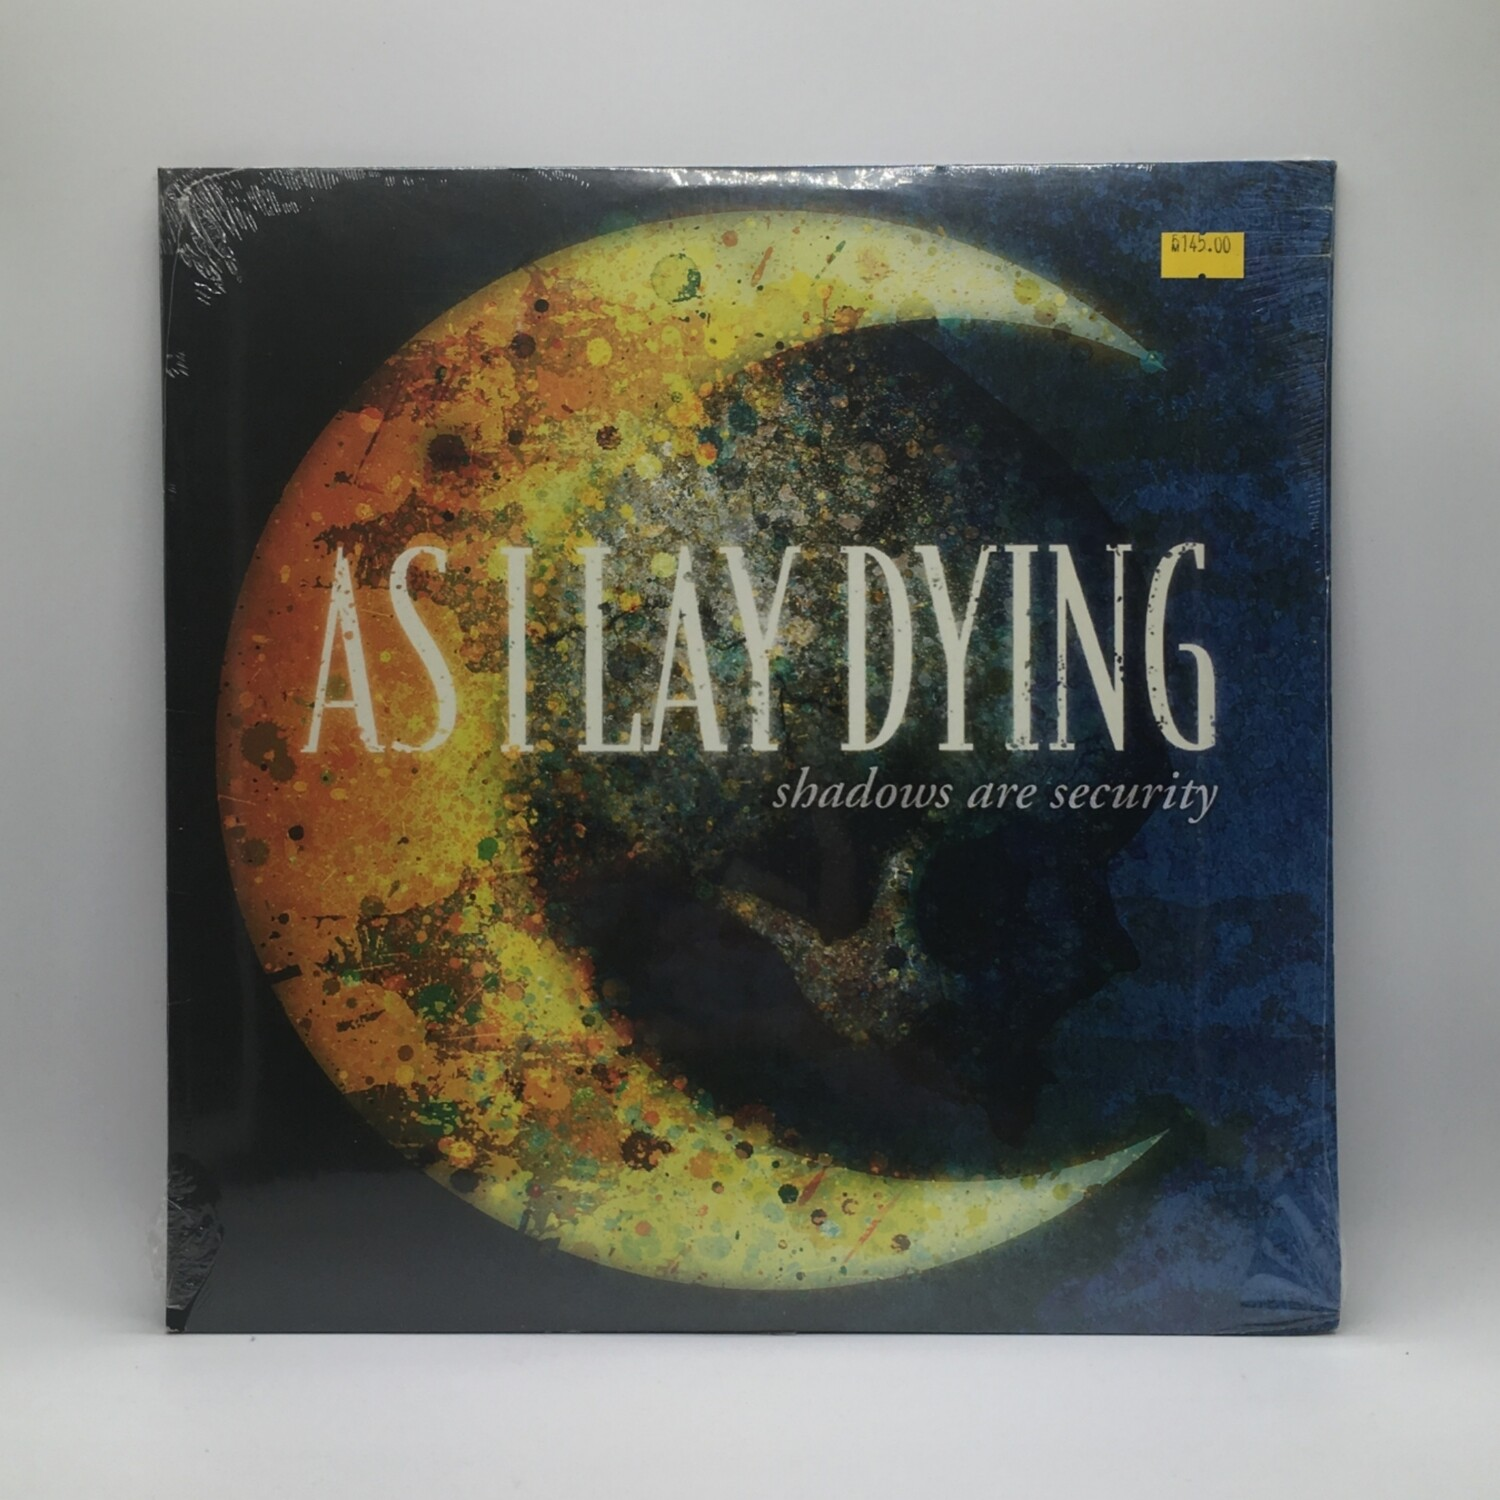 AS I LAY DYING -SHADOW ARE SECURITY- LP (COLOR VINYL)